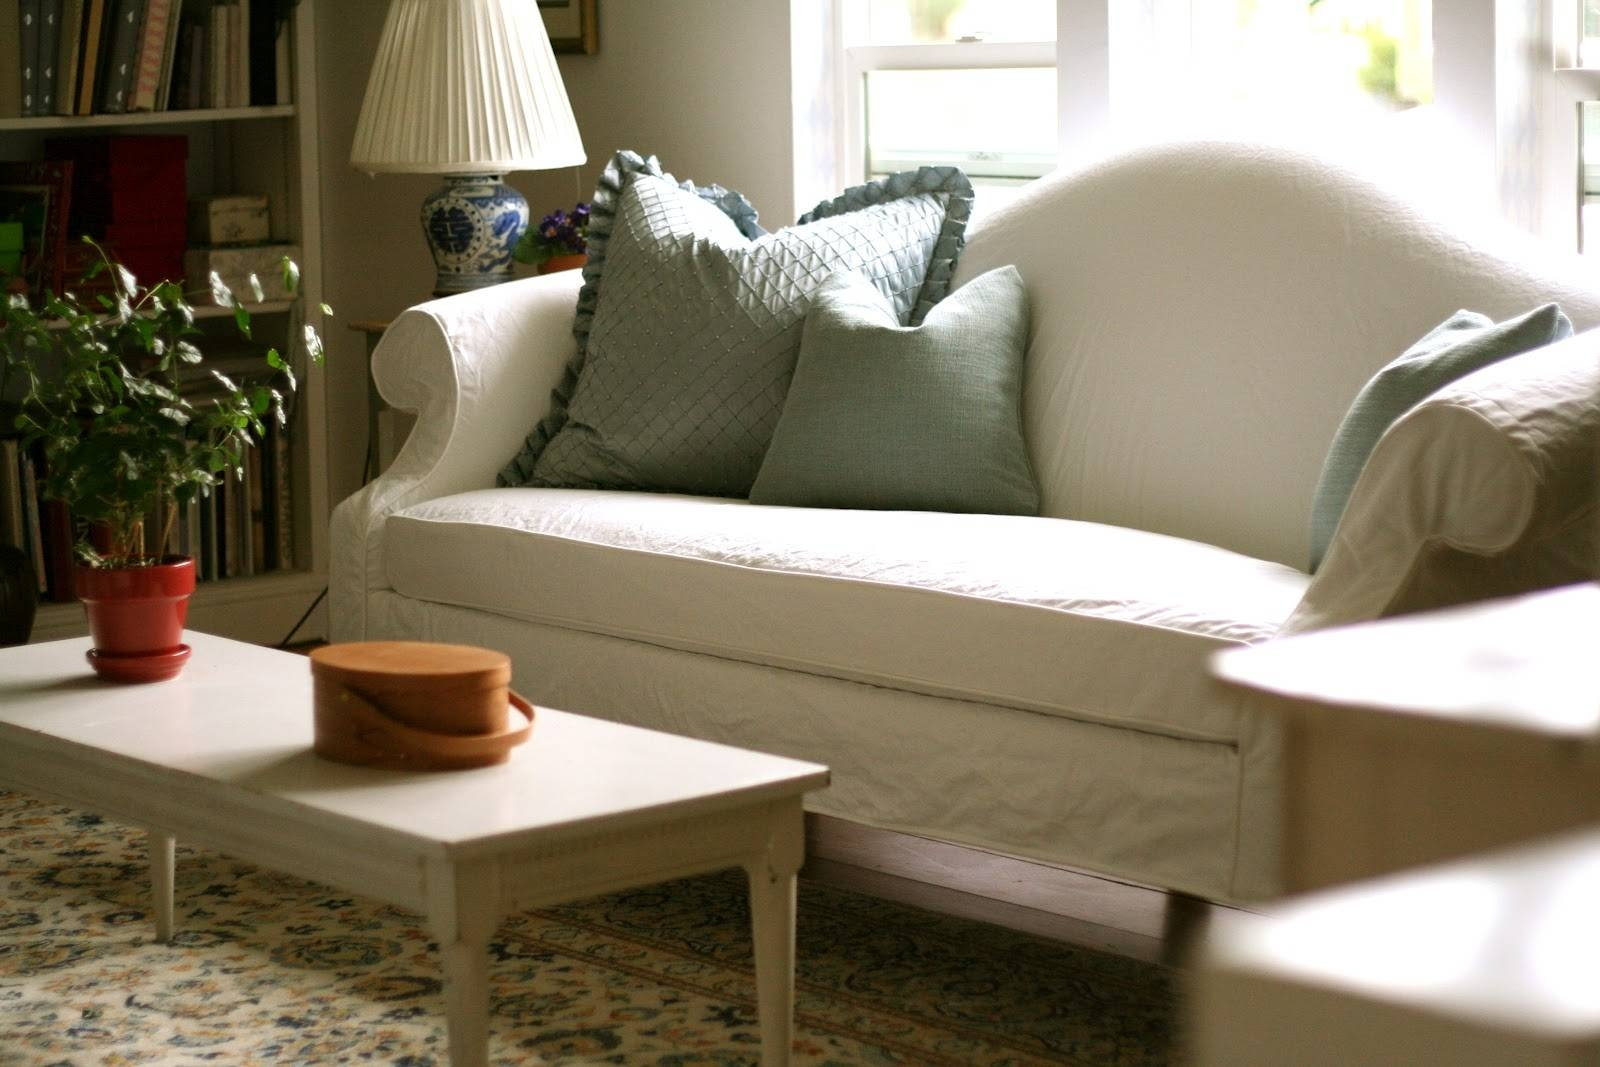 Custom Slipcoversshelley: White Camel Back Couch intended for Camelback Slipcovers (Image 6 of 15)